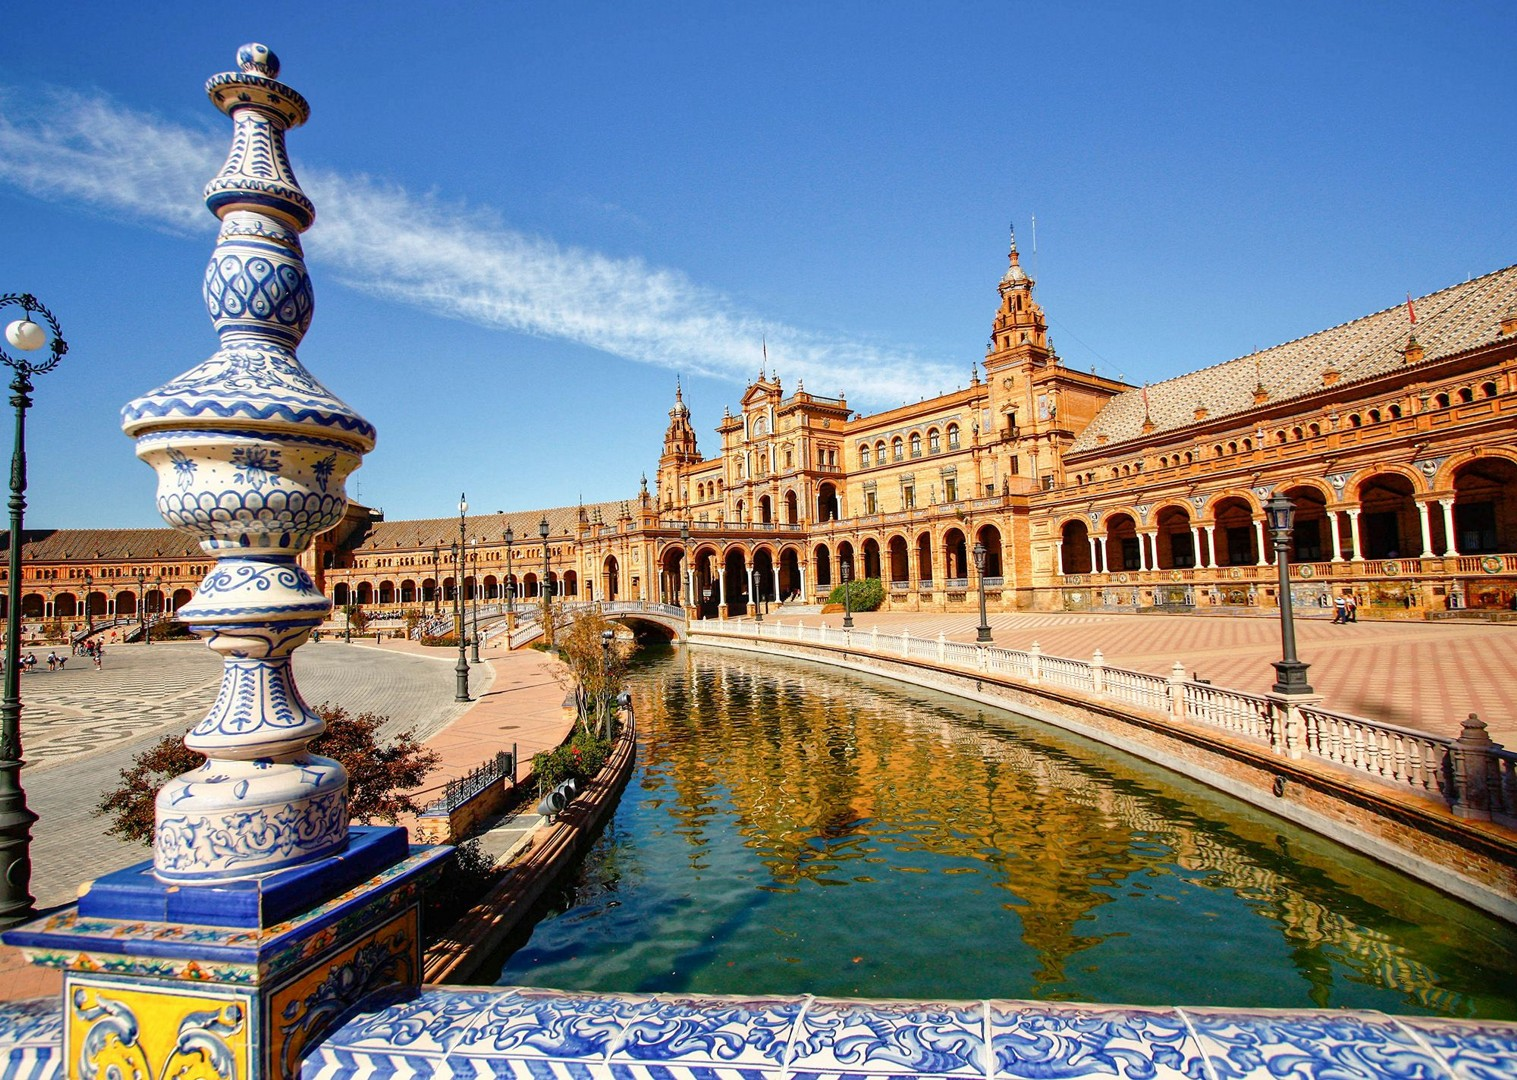 seville-southern-spain-granada-to-seville-guided-leisure-cycling-holiday.jpg - Spain - Granada to Seville - Leisure Cycling